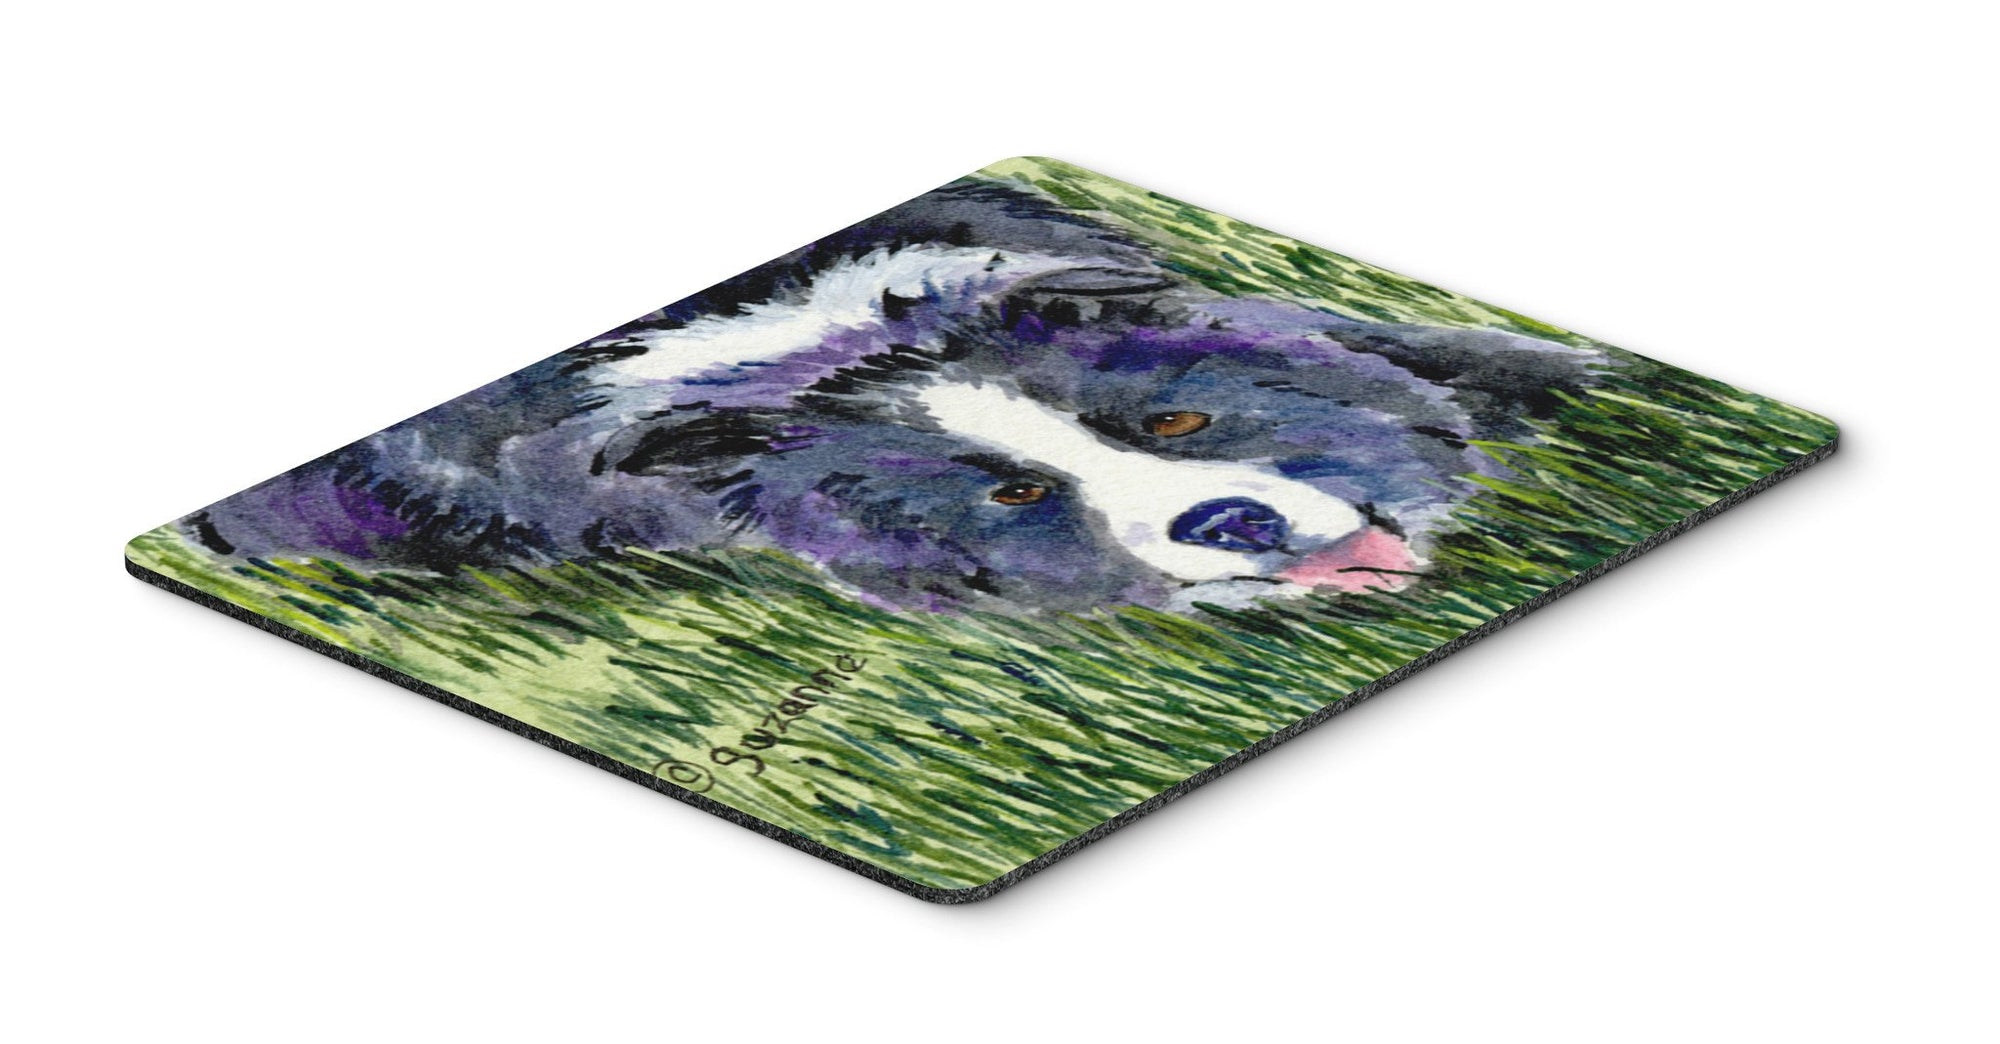 Border Collie Mouse pad, hot pad, or trivet by Caroline's Treasures